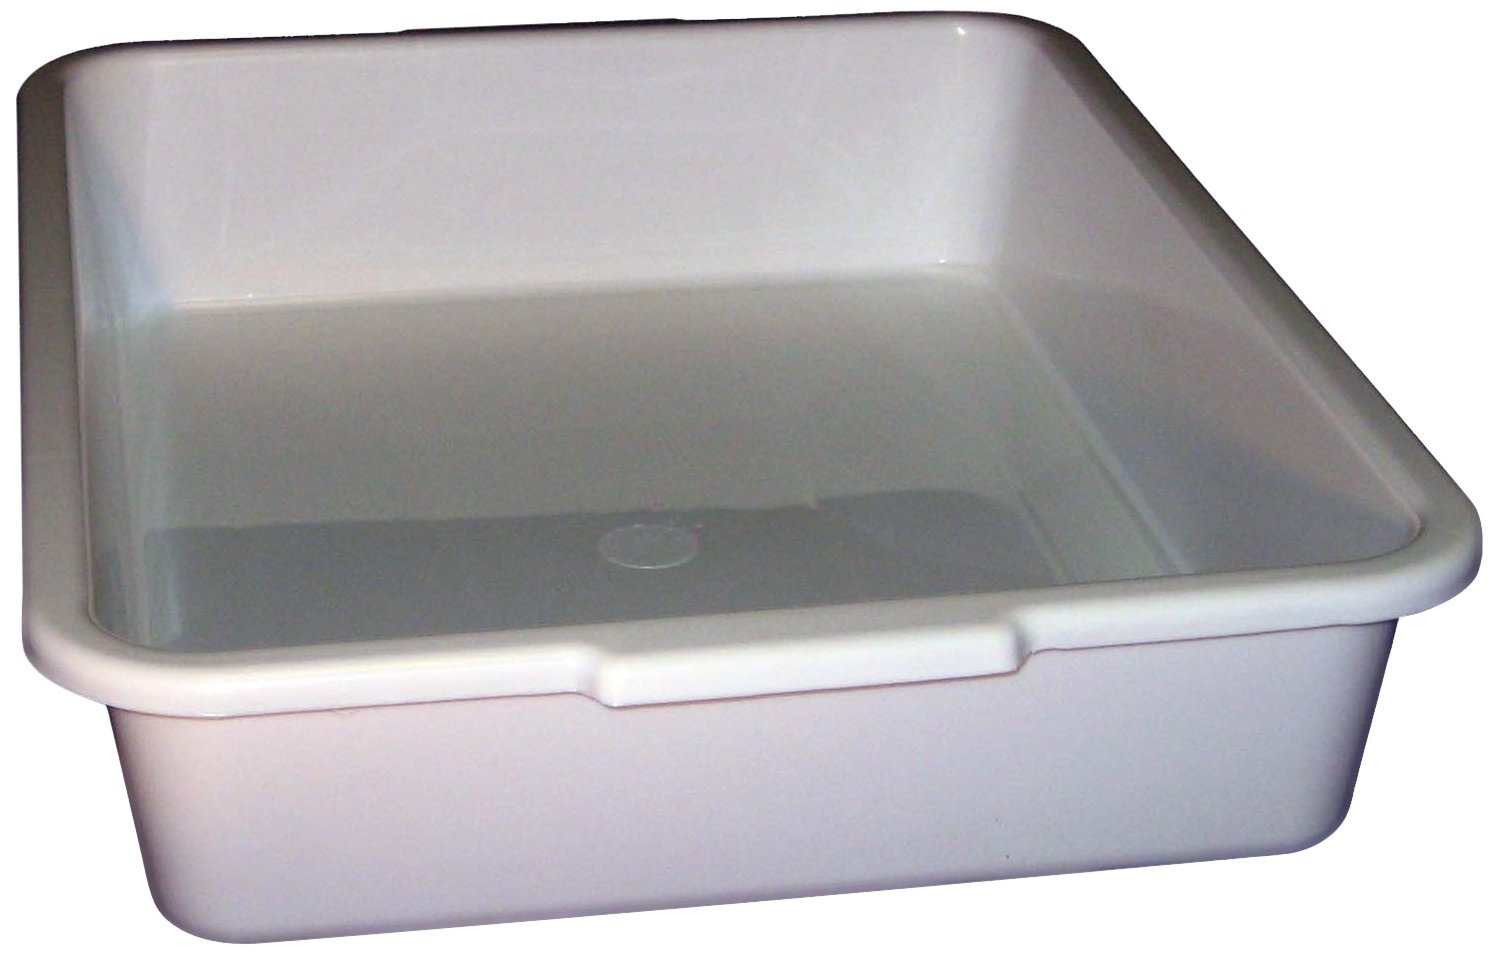 "PSC 1007177 General Purpose Trays, Autoclavable, Polypropylene, 15"" x 12"" x 3"", White"